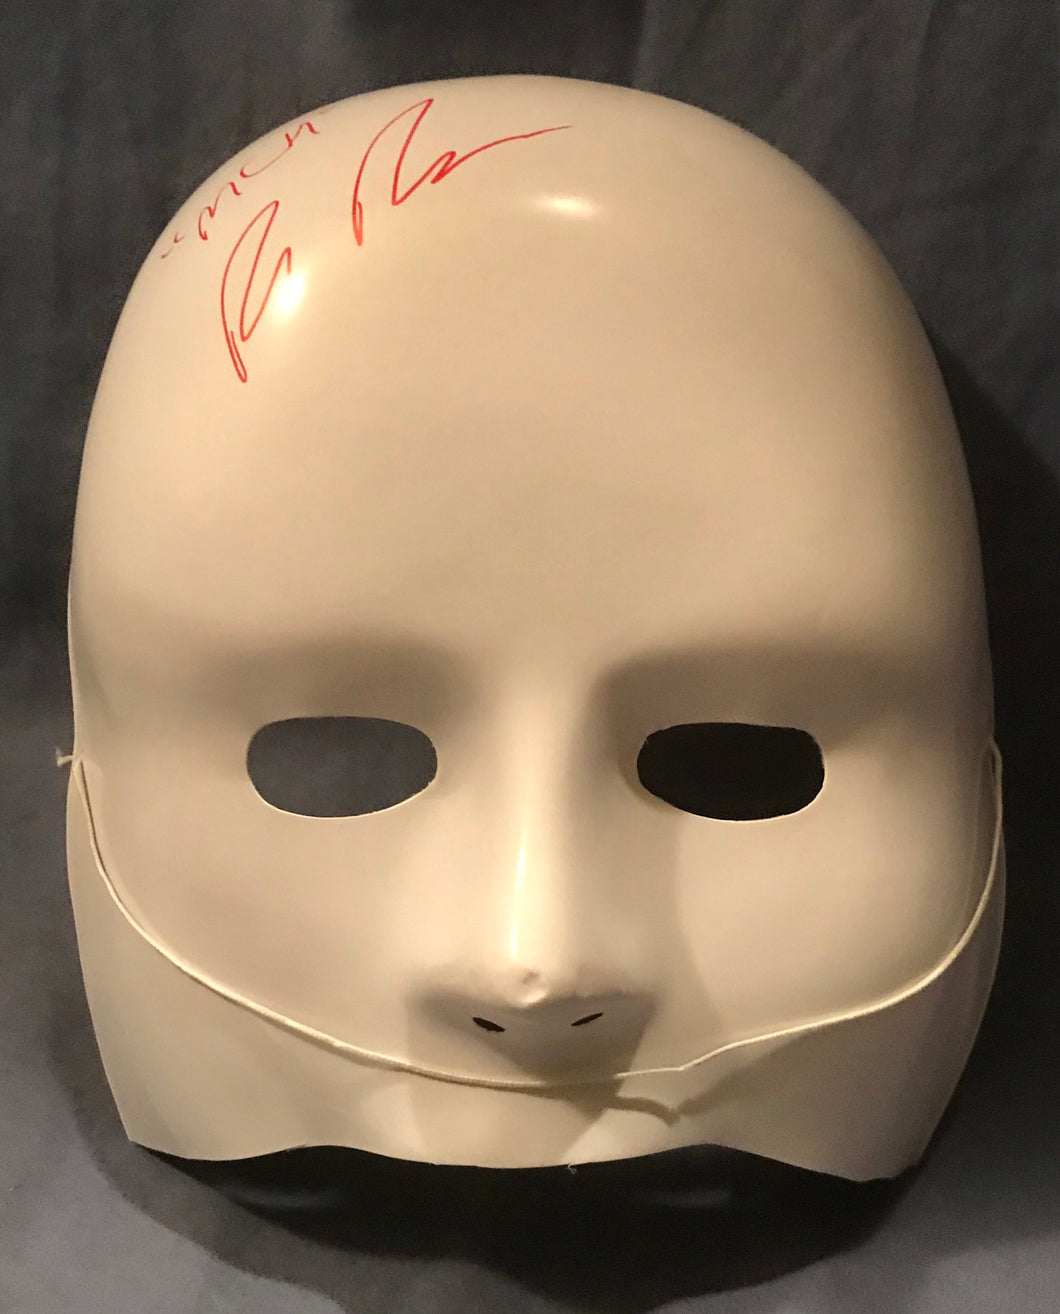 Signed Cult Member Mask from